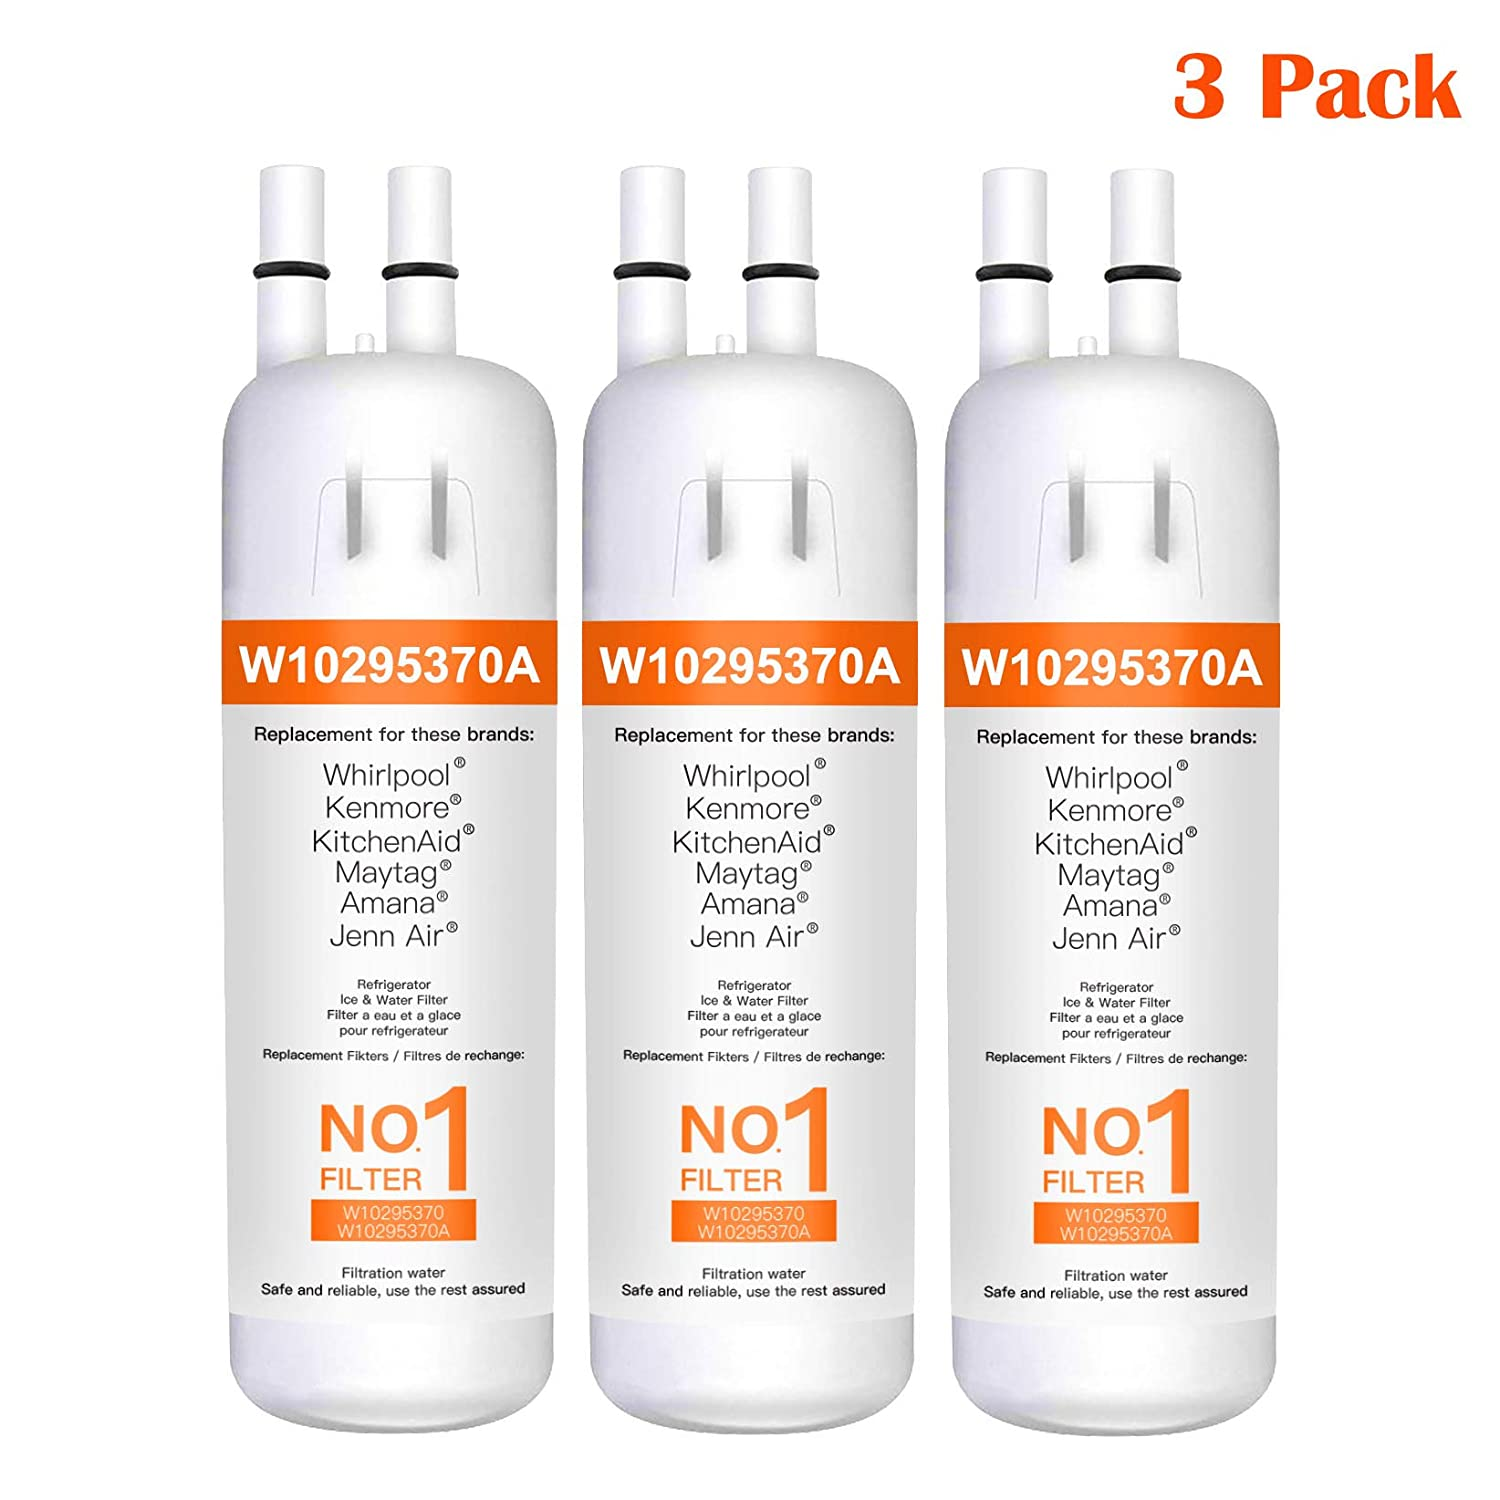 9081 Water Filter Compatible for Kenmore 9081, Filter1, Kenmore 46-9930 Water Filter, 9930 Water Filter 1, 46-9081, 9081, 3 Pack